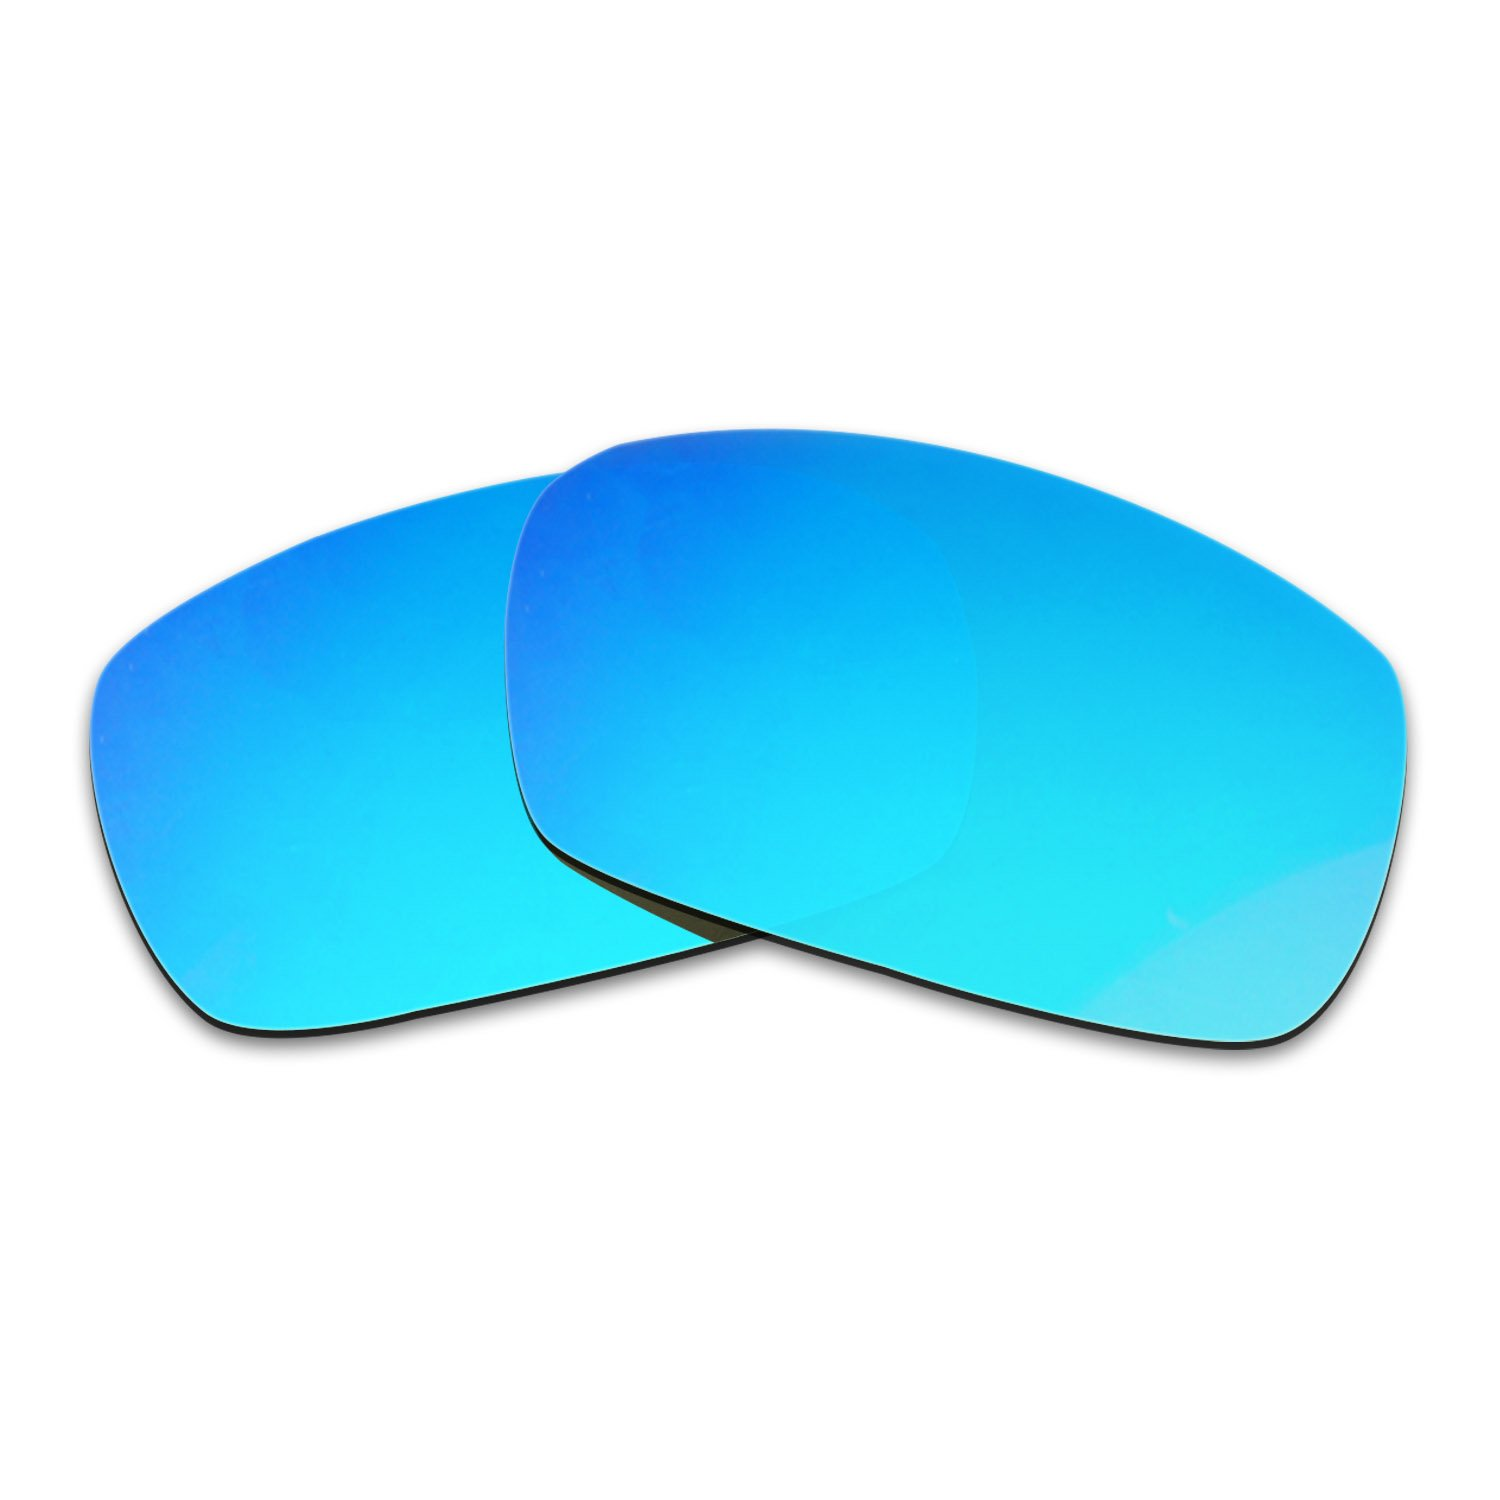 Hkuco Plus Mens Replacement Lenses For Spy Optic Dirk Sunglasses Blue Polarized